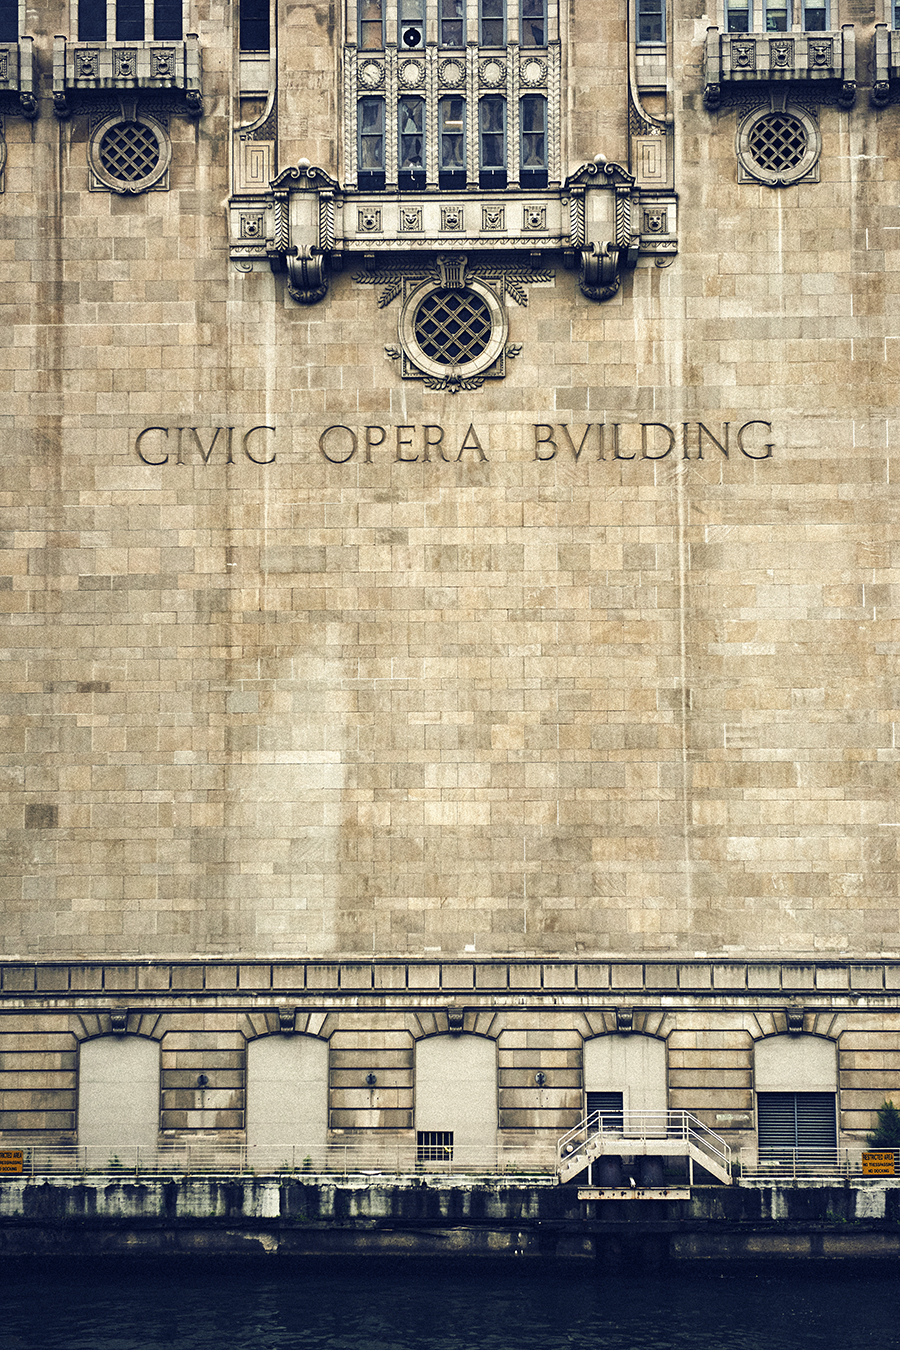 Civic Opera across from the Ogilvie and Union Station stop.  According to Senior Deck Hand Dave Ling, there are 75 singing faces on the river side of the building.